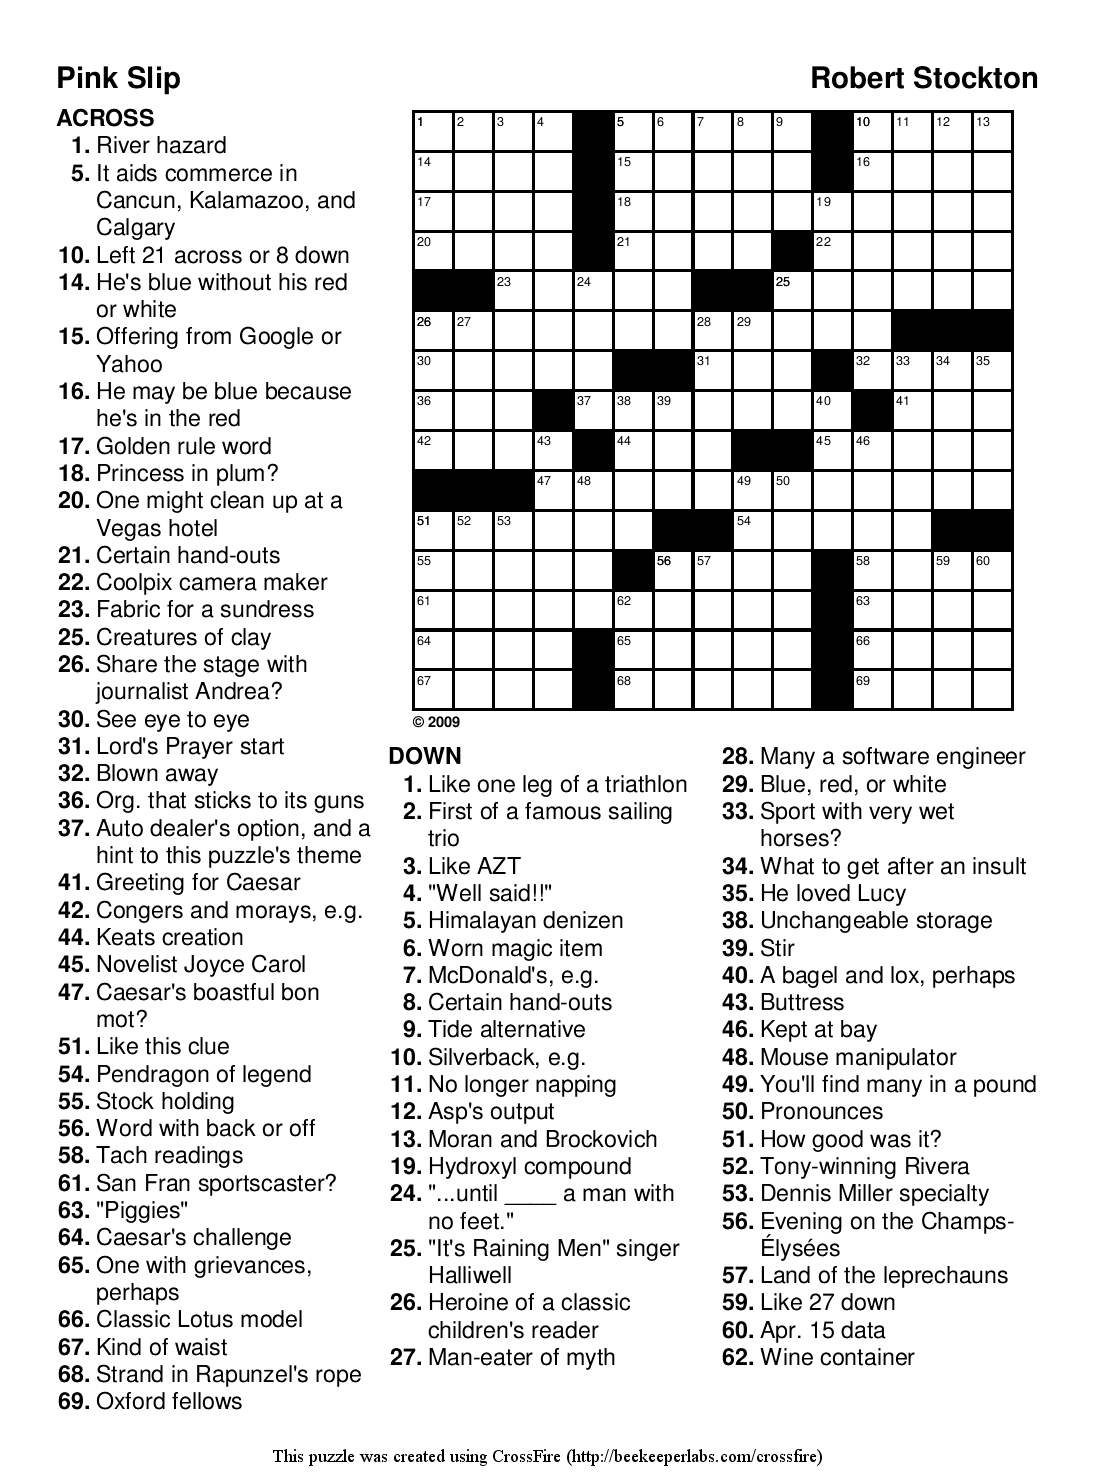 Printable Puzzles For Adults | Easy Word Puzzles Printable Festivals - Printable Crossword Puzzles For College Students